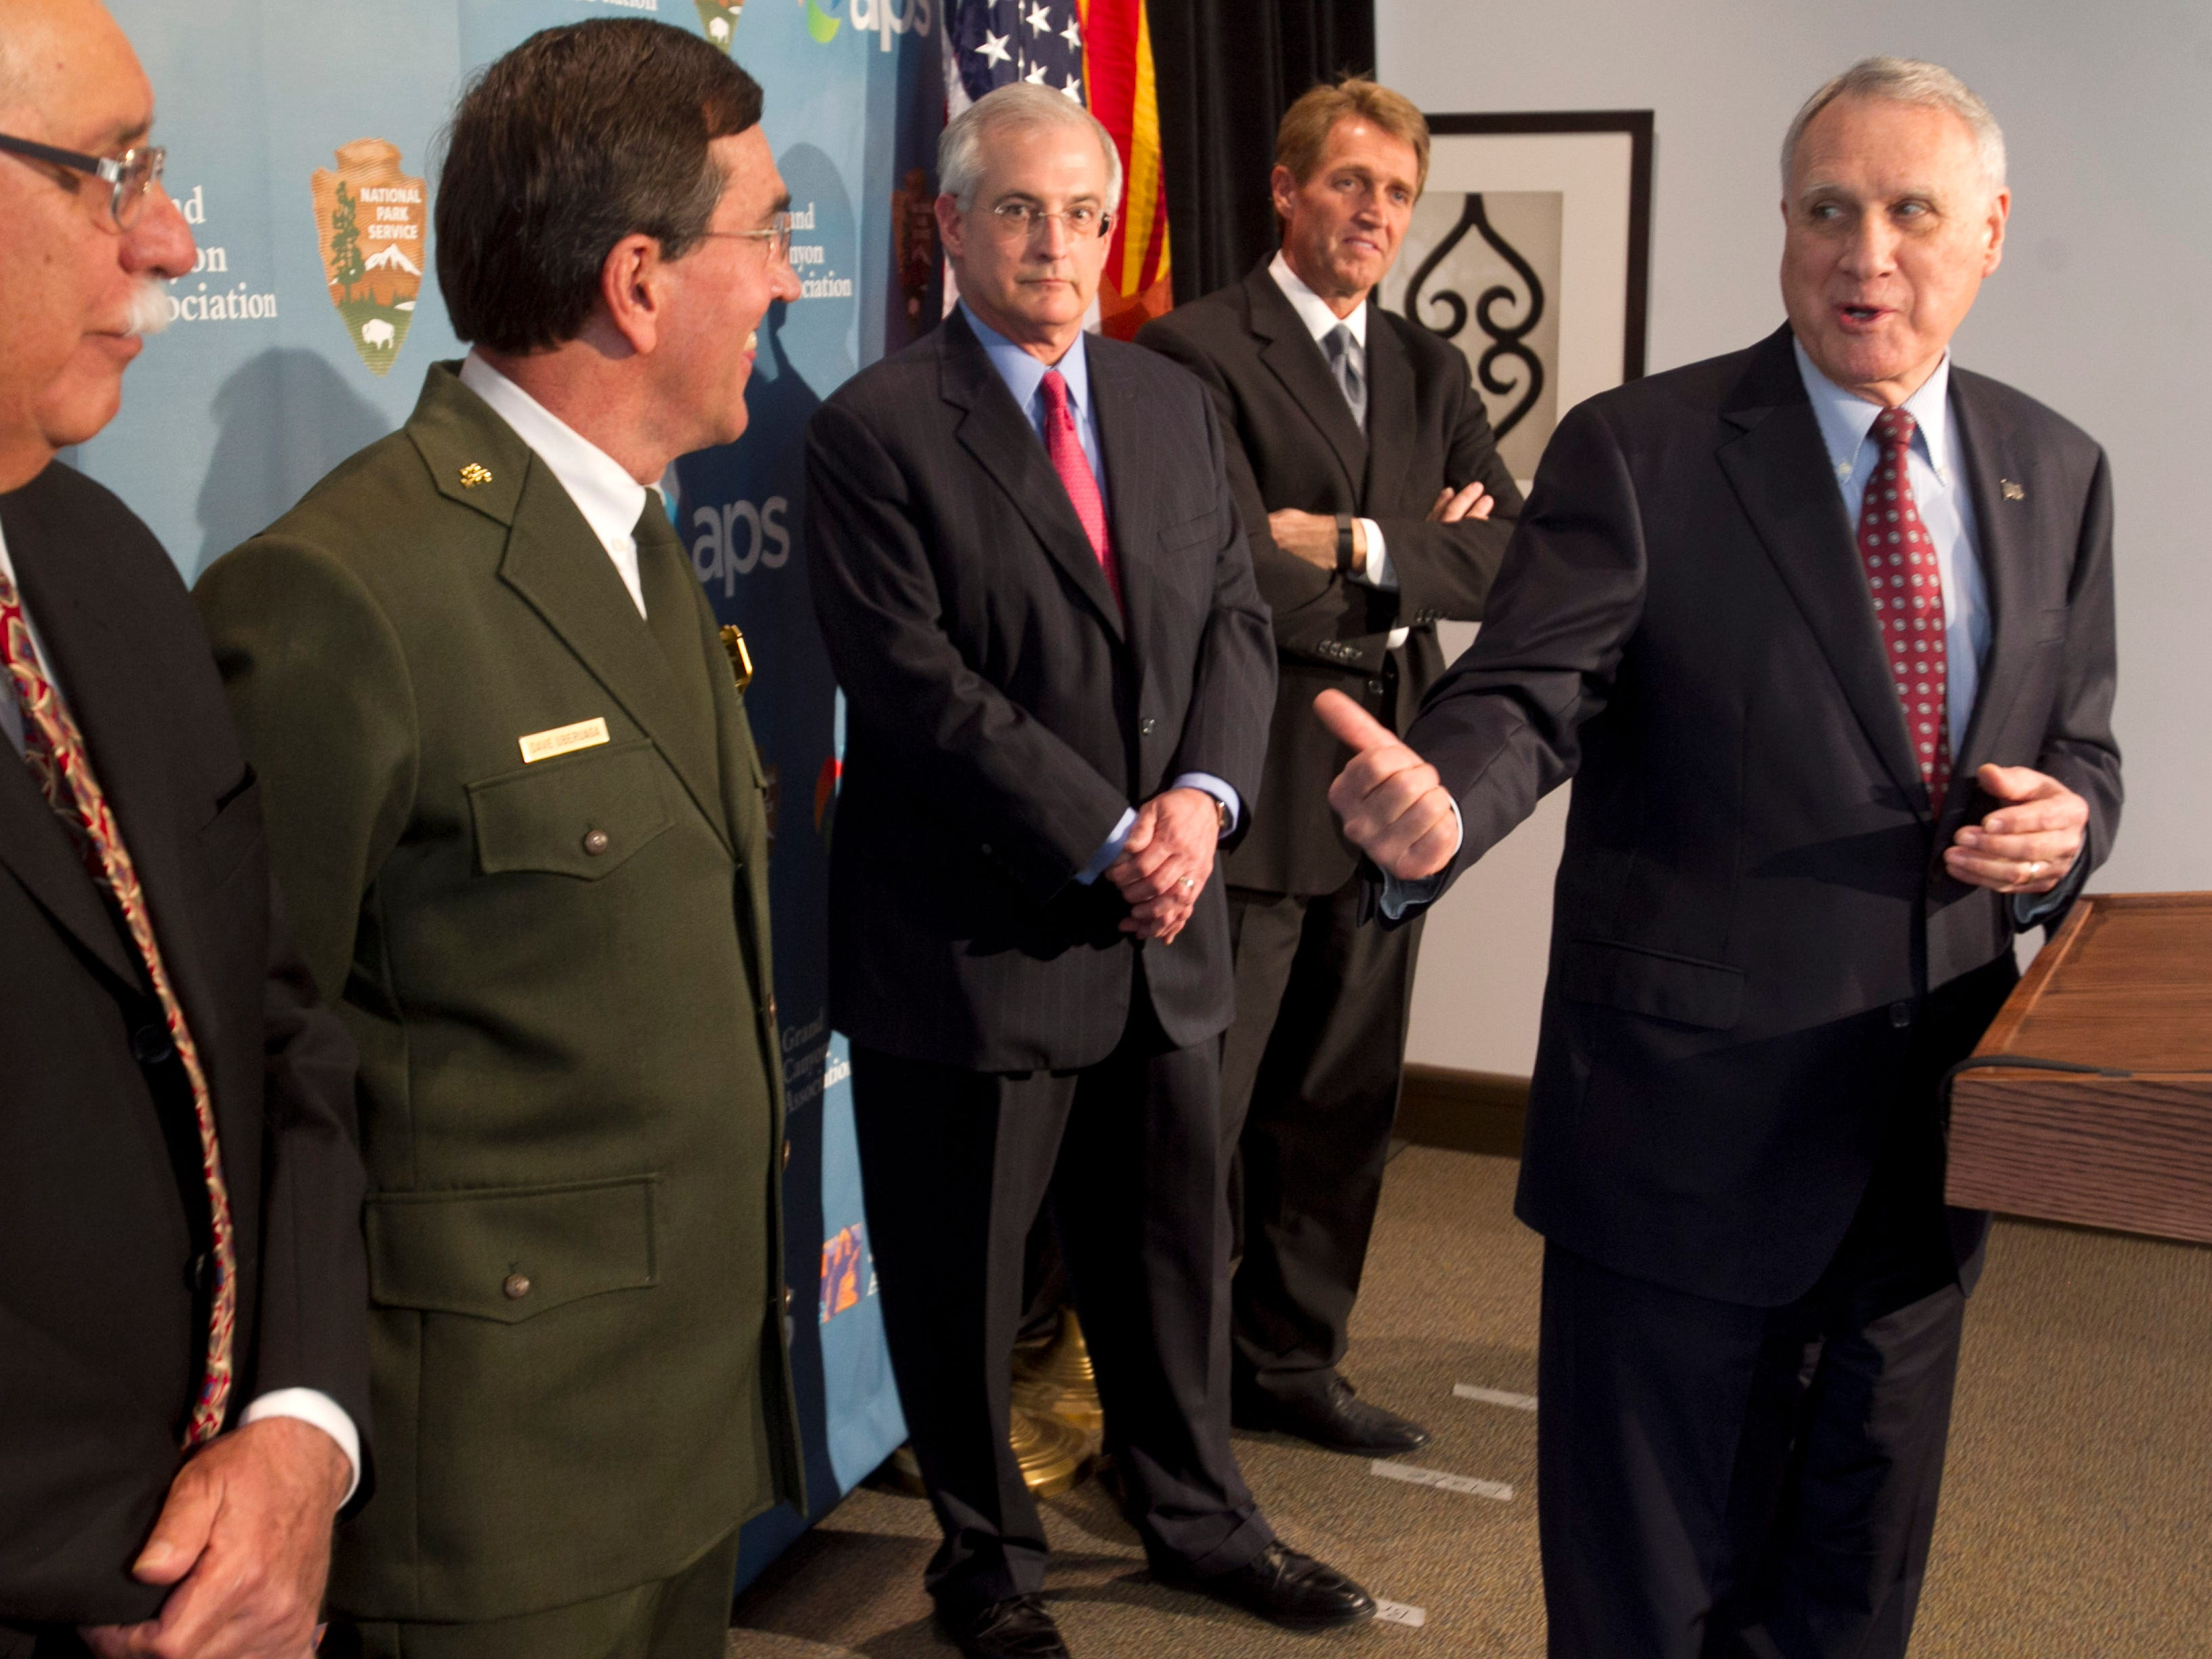 Former U.S. Senator Jon Kyl speaks as (from left) U.S. Representative Ed Pastor, Grand Canyon National Park Superintendent David Uberuaga, Donald Brandt, Chairman of the Board and CEO of APS and U.S. Senator Jeff Flake look on during a press conference at the Heard Museum, Feb. 7, 2014.